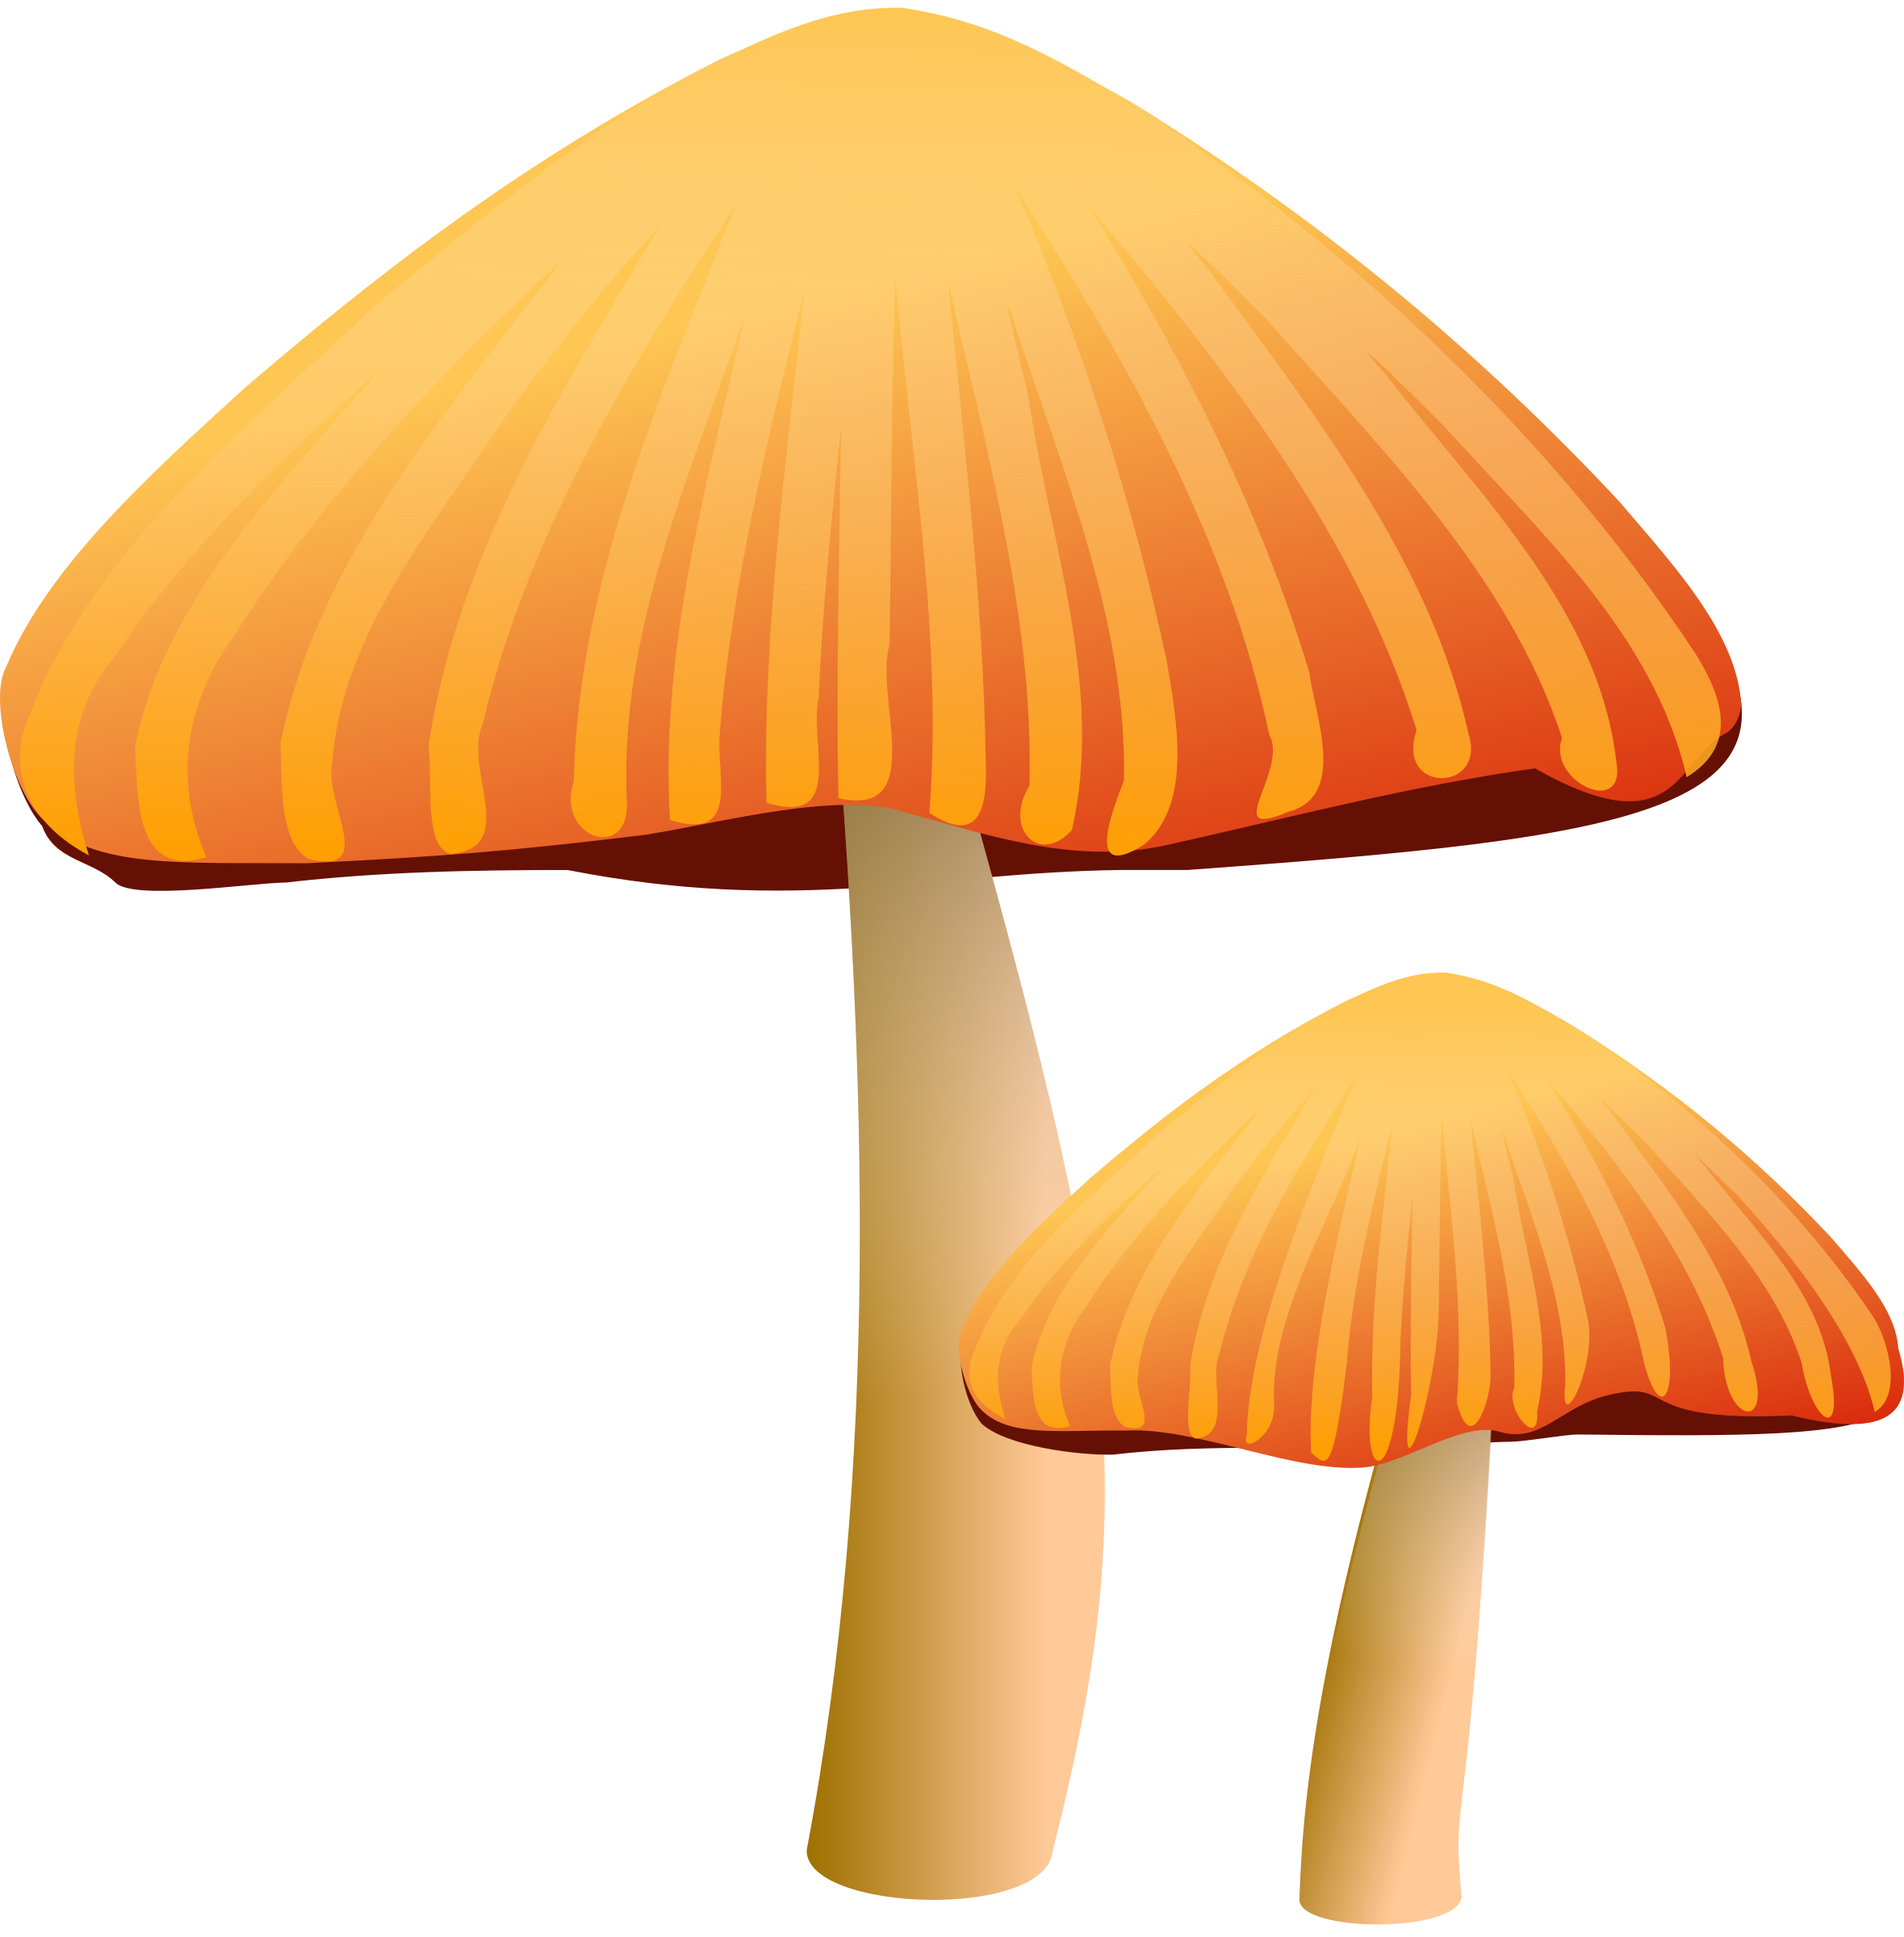 Orange Mushroom by rockraikar